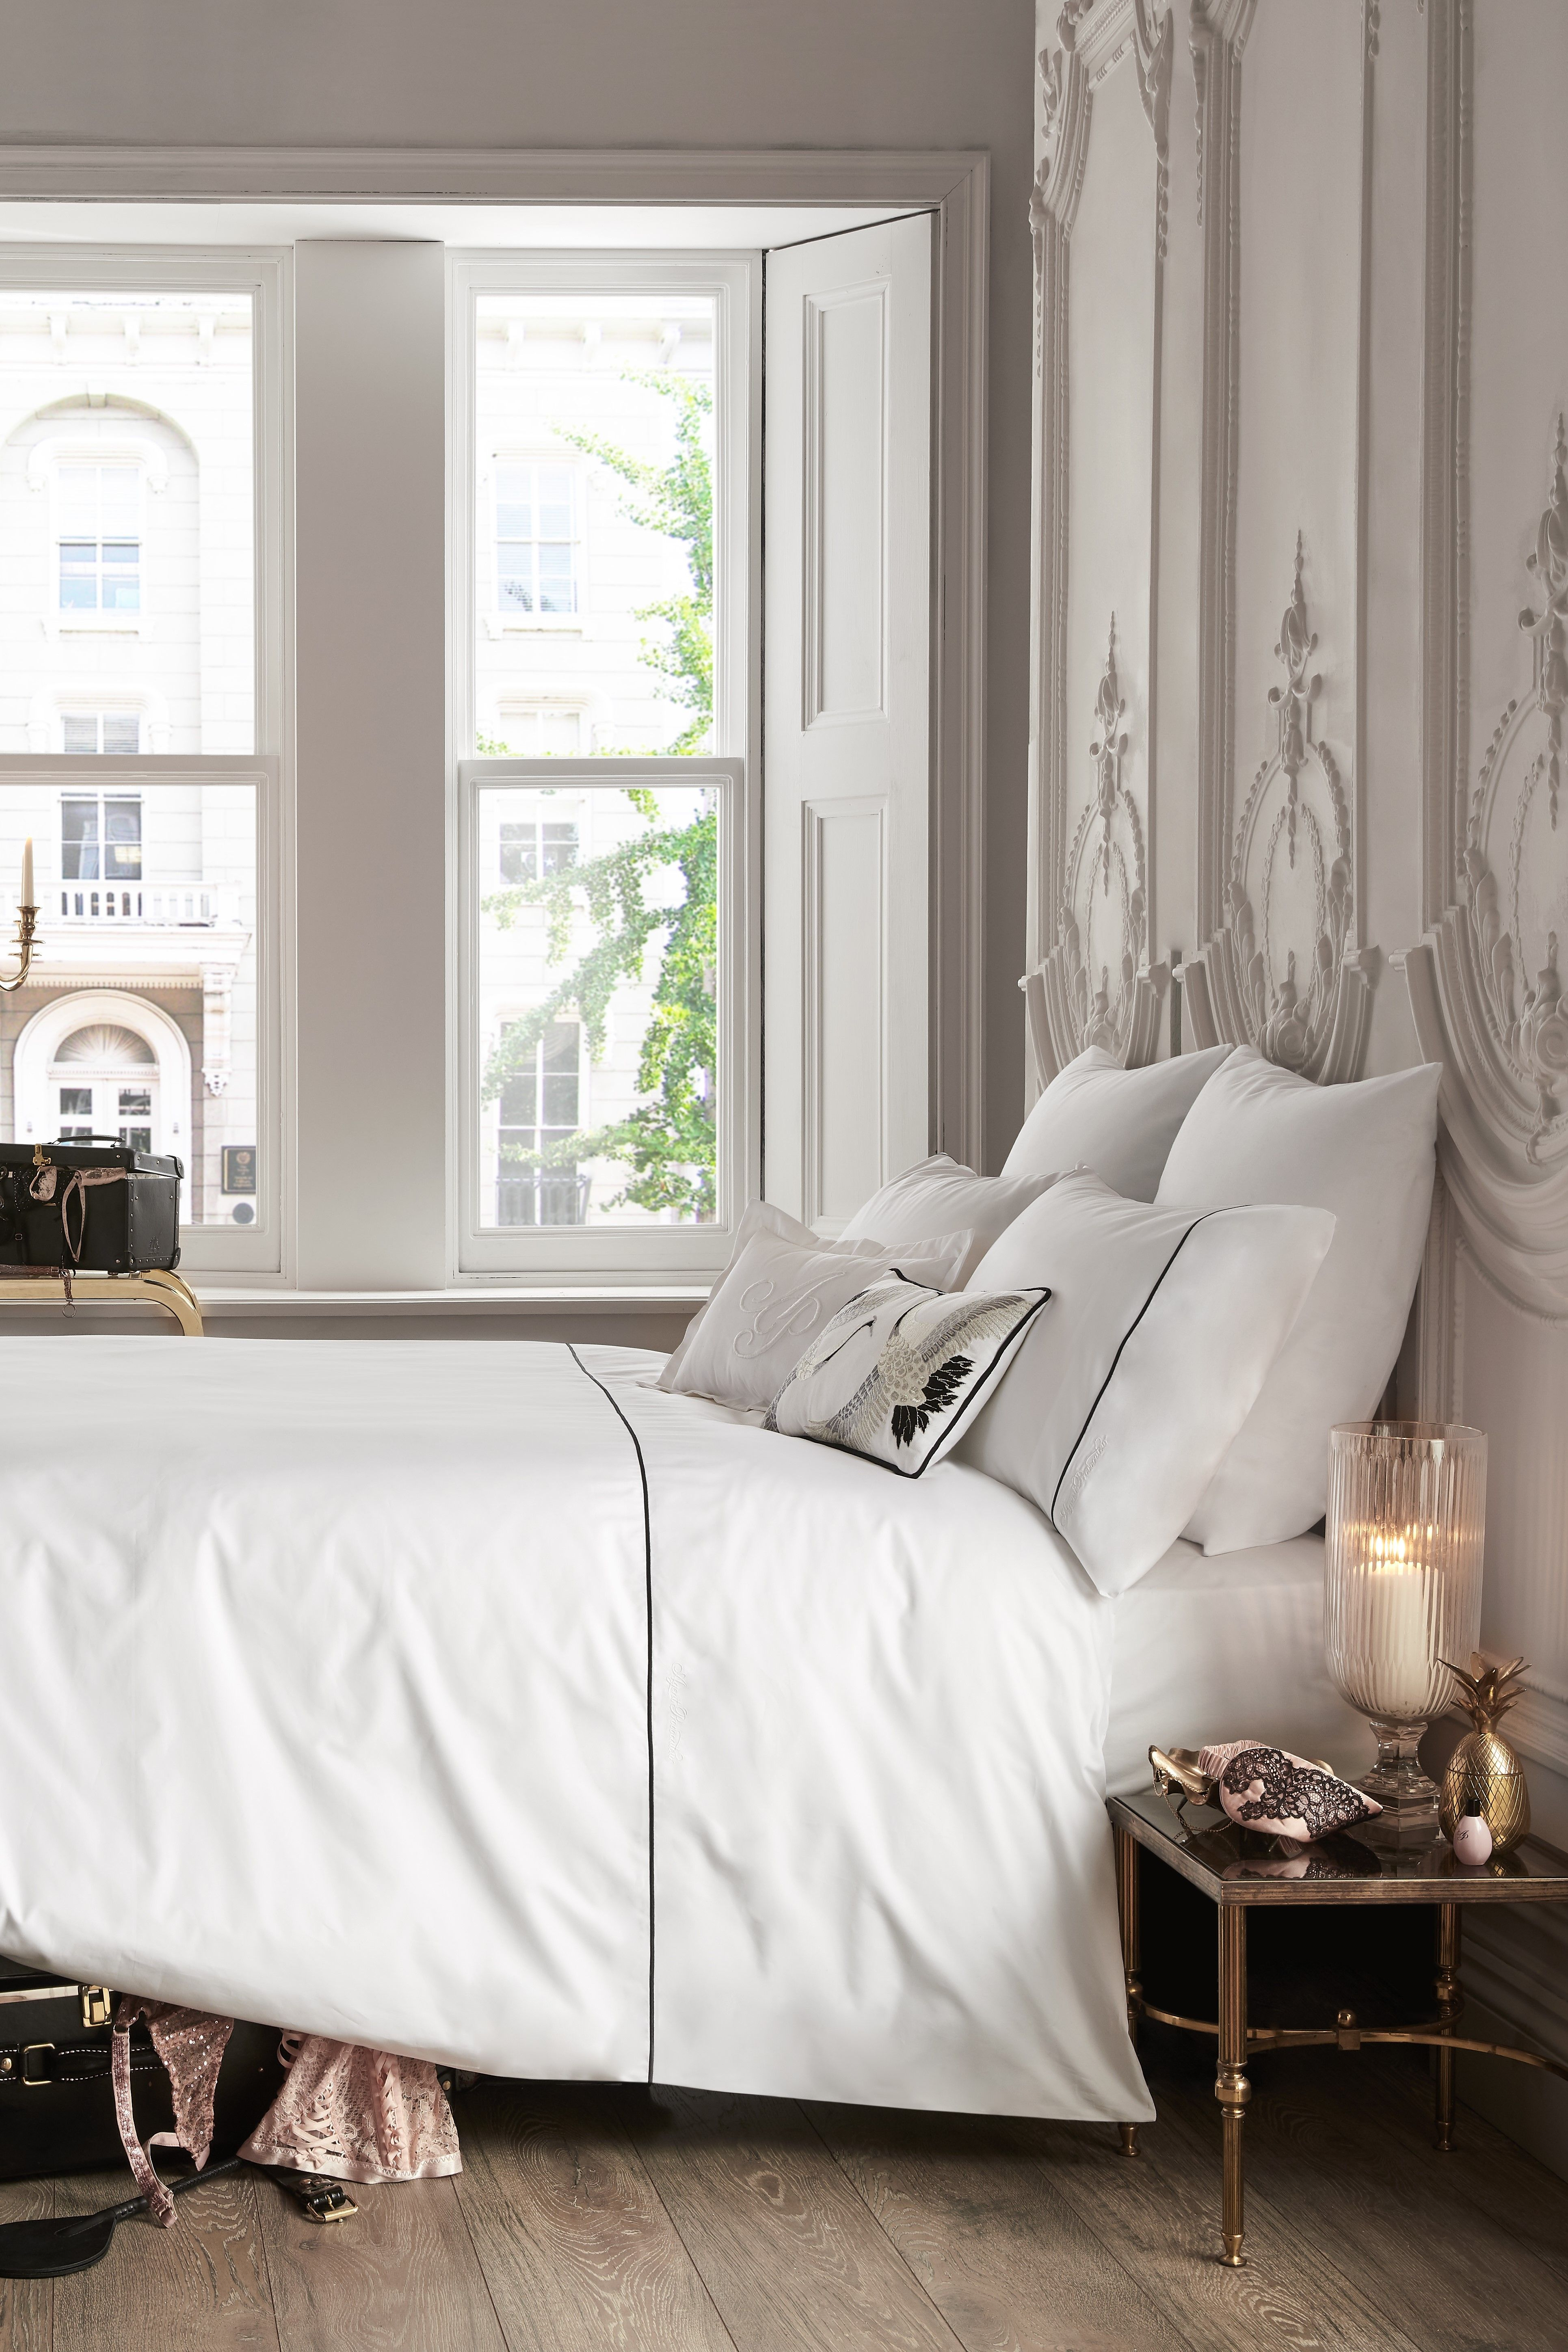 Light and airy, an allwhite bedroom is a timeless classic